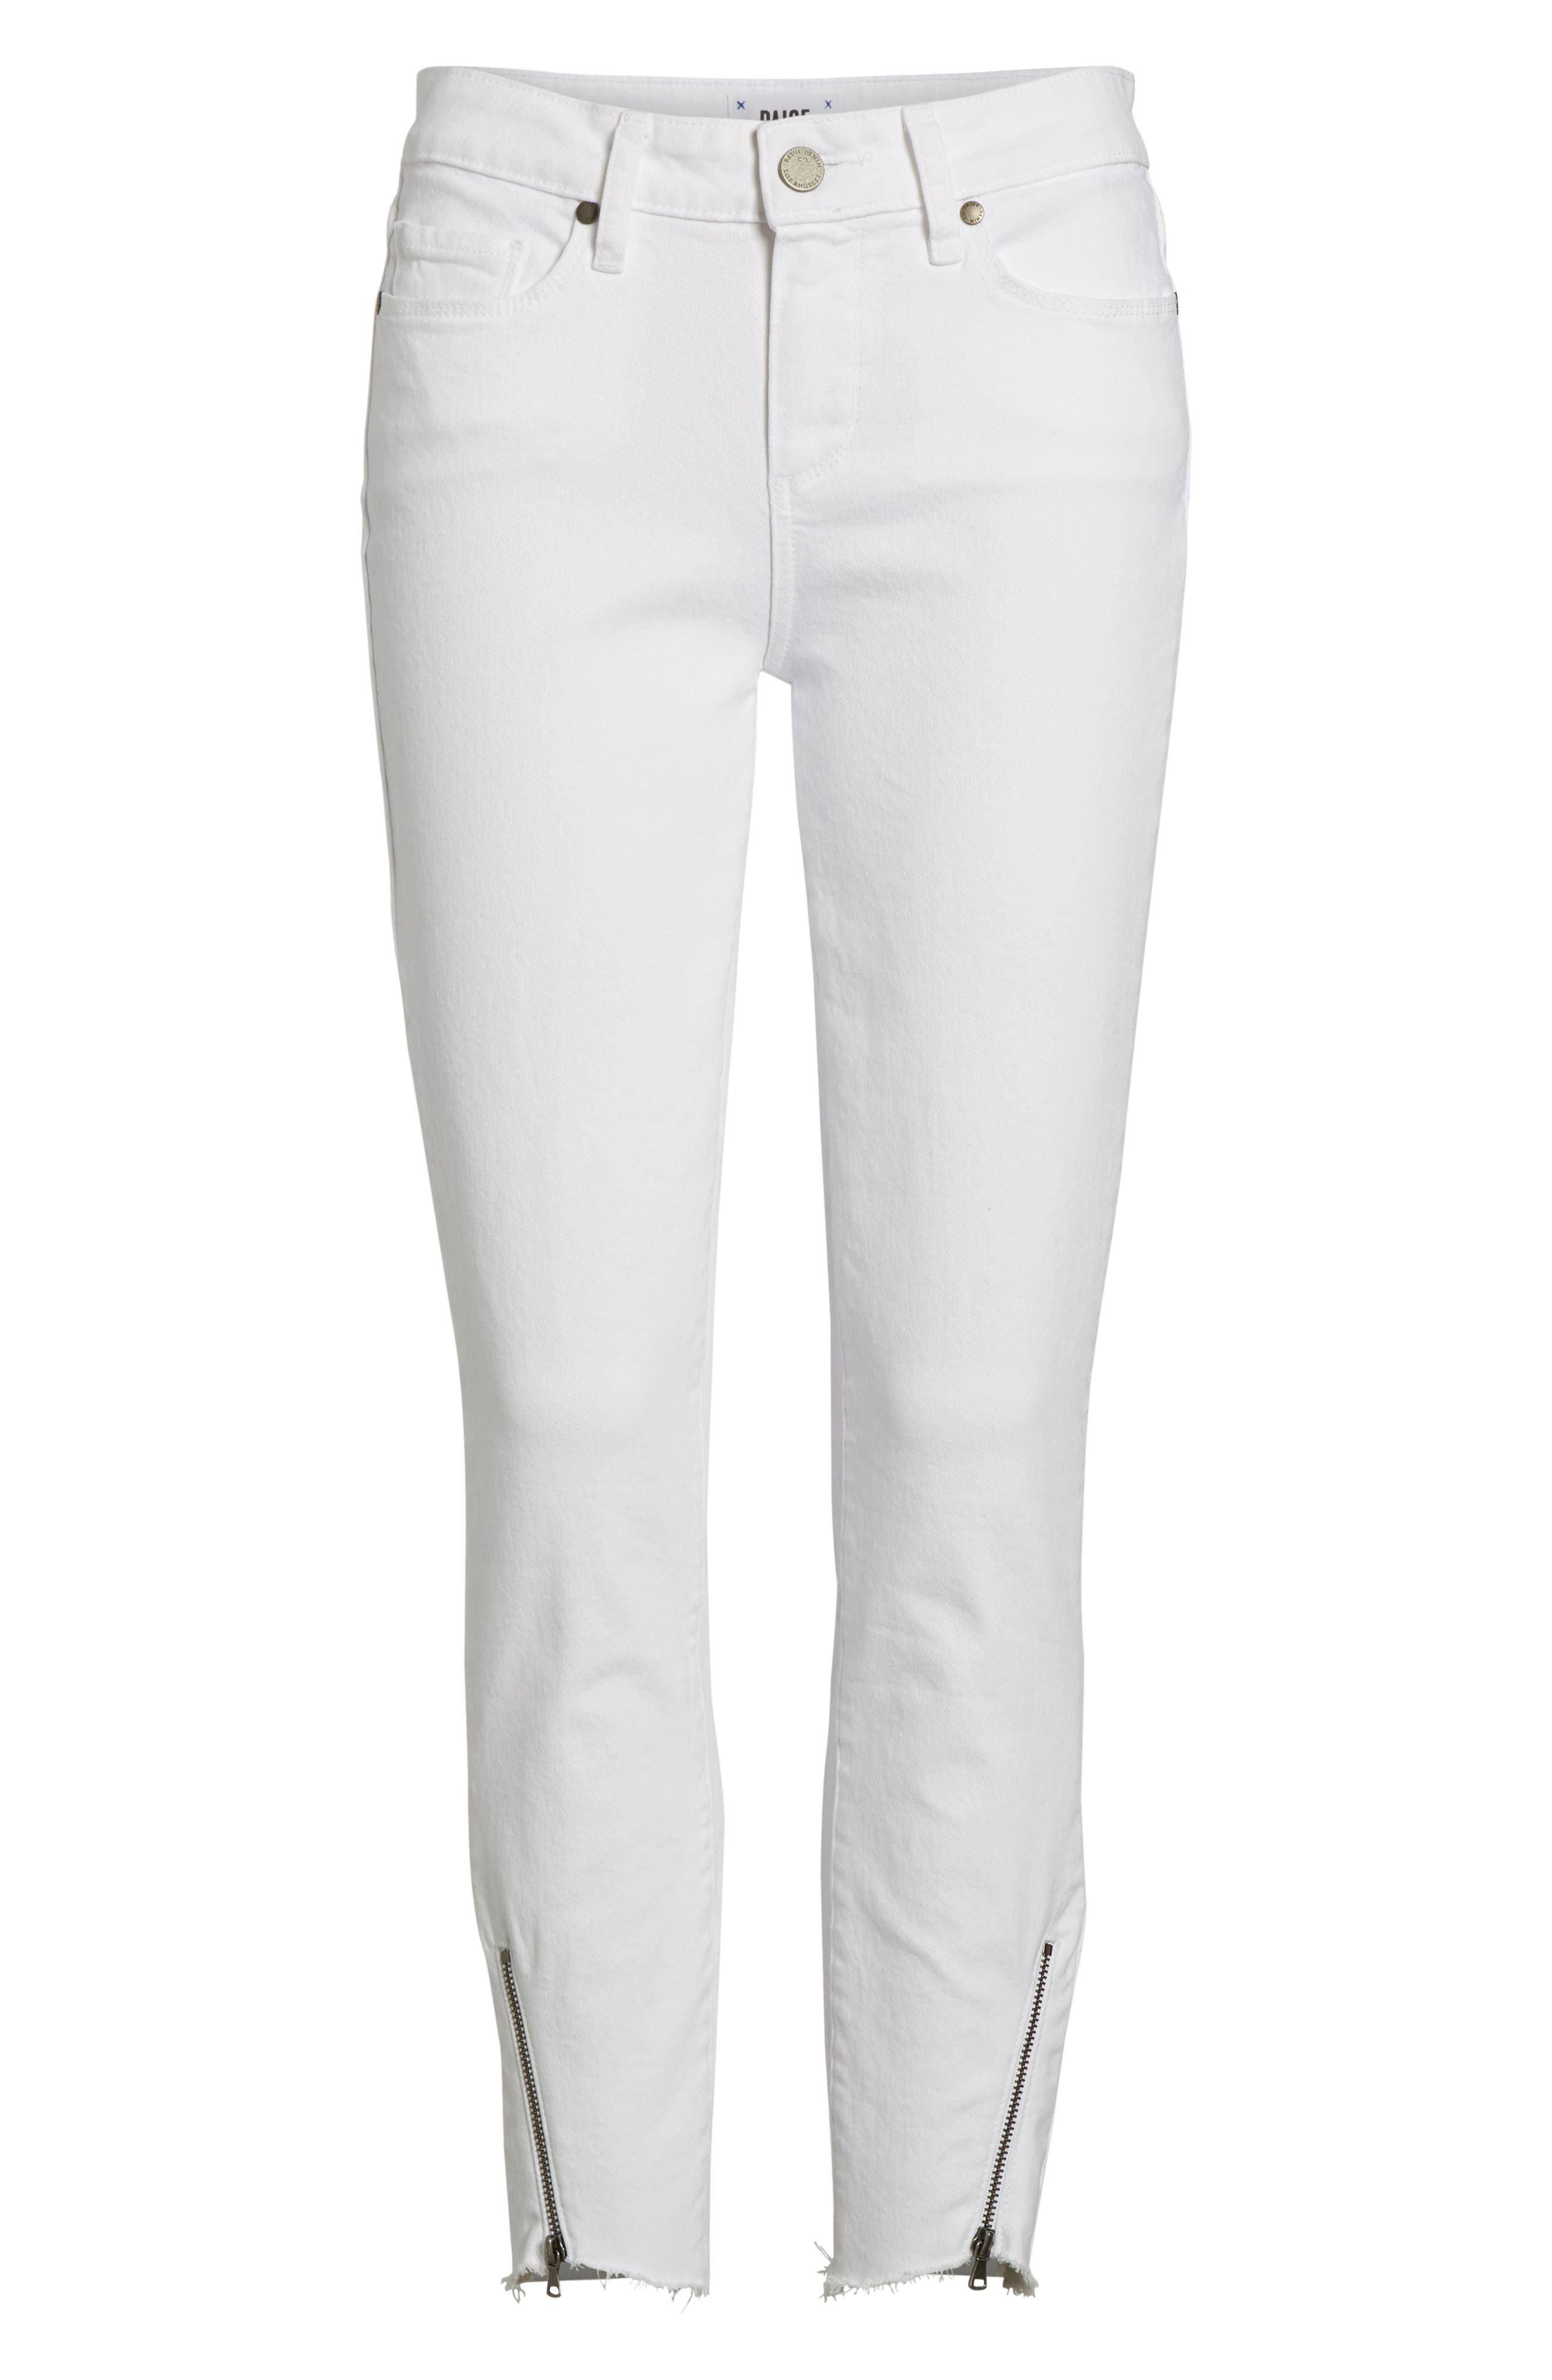 Verdugo Crop Ultra Skinny Jeans,                             Alternate thumbnail 7, color,                             100